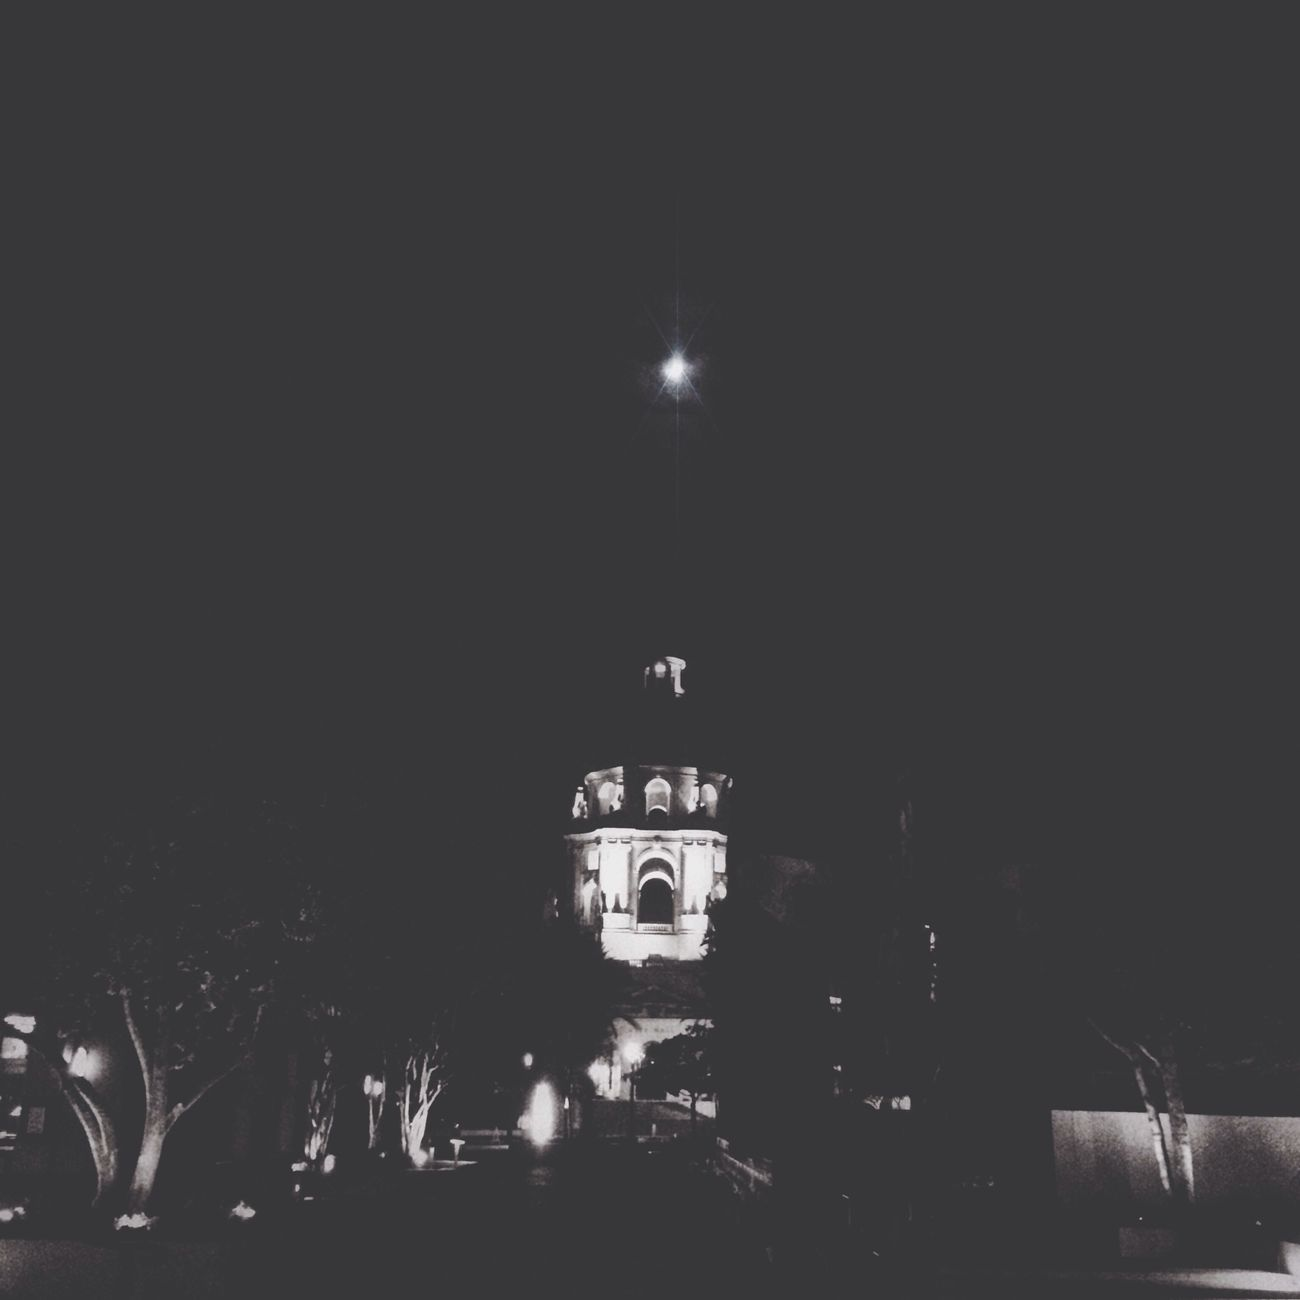 The moon over Pasadena. Eye4nightlight AMPt_community Blackandwhite